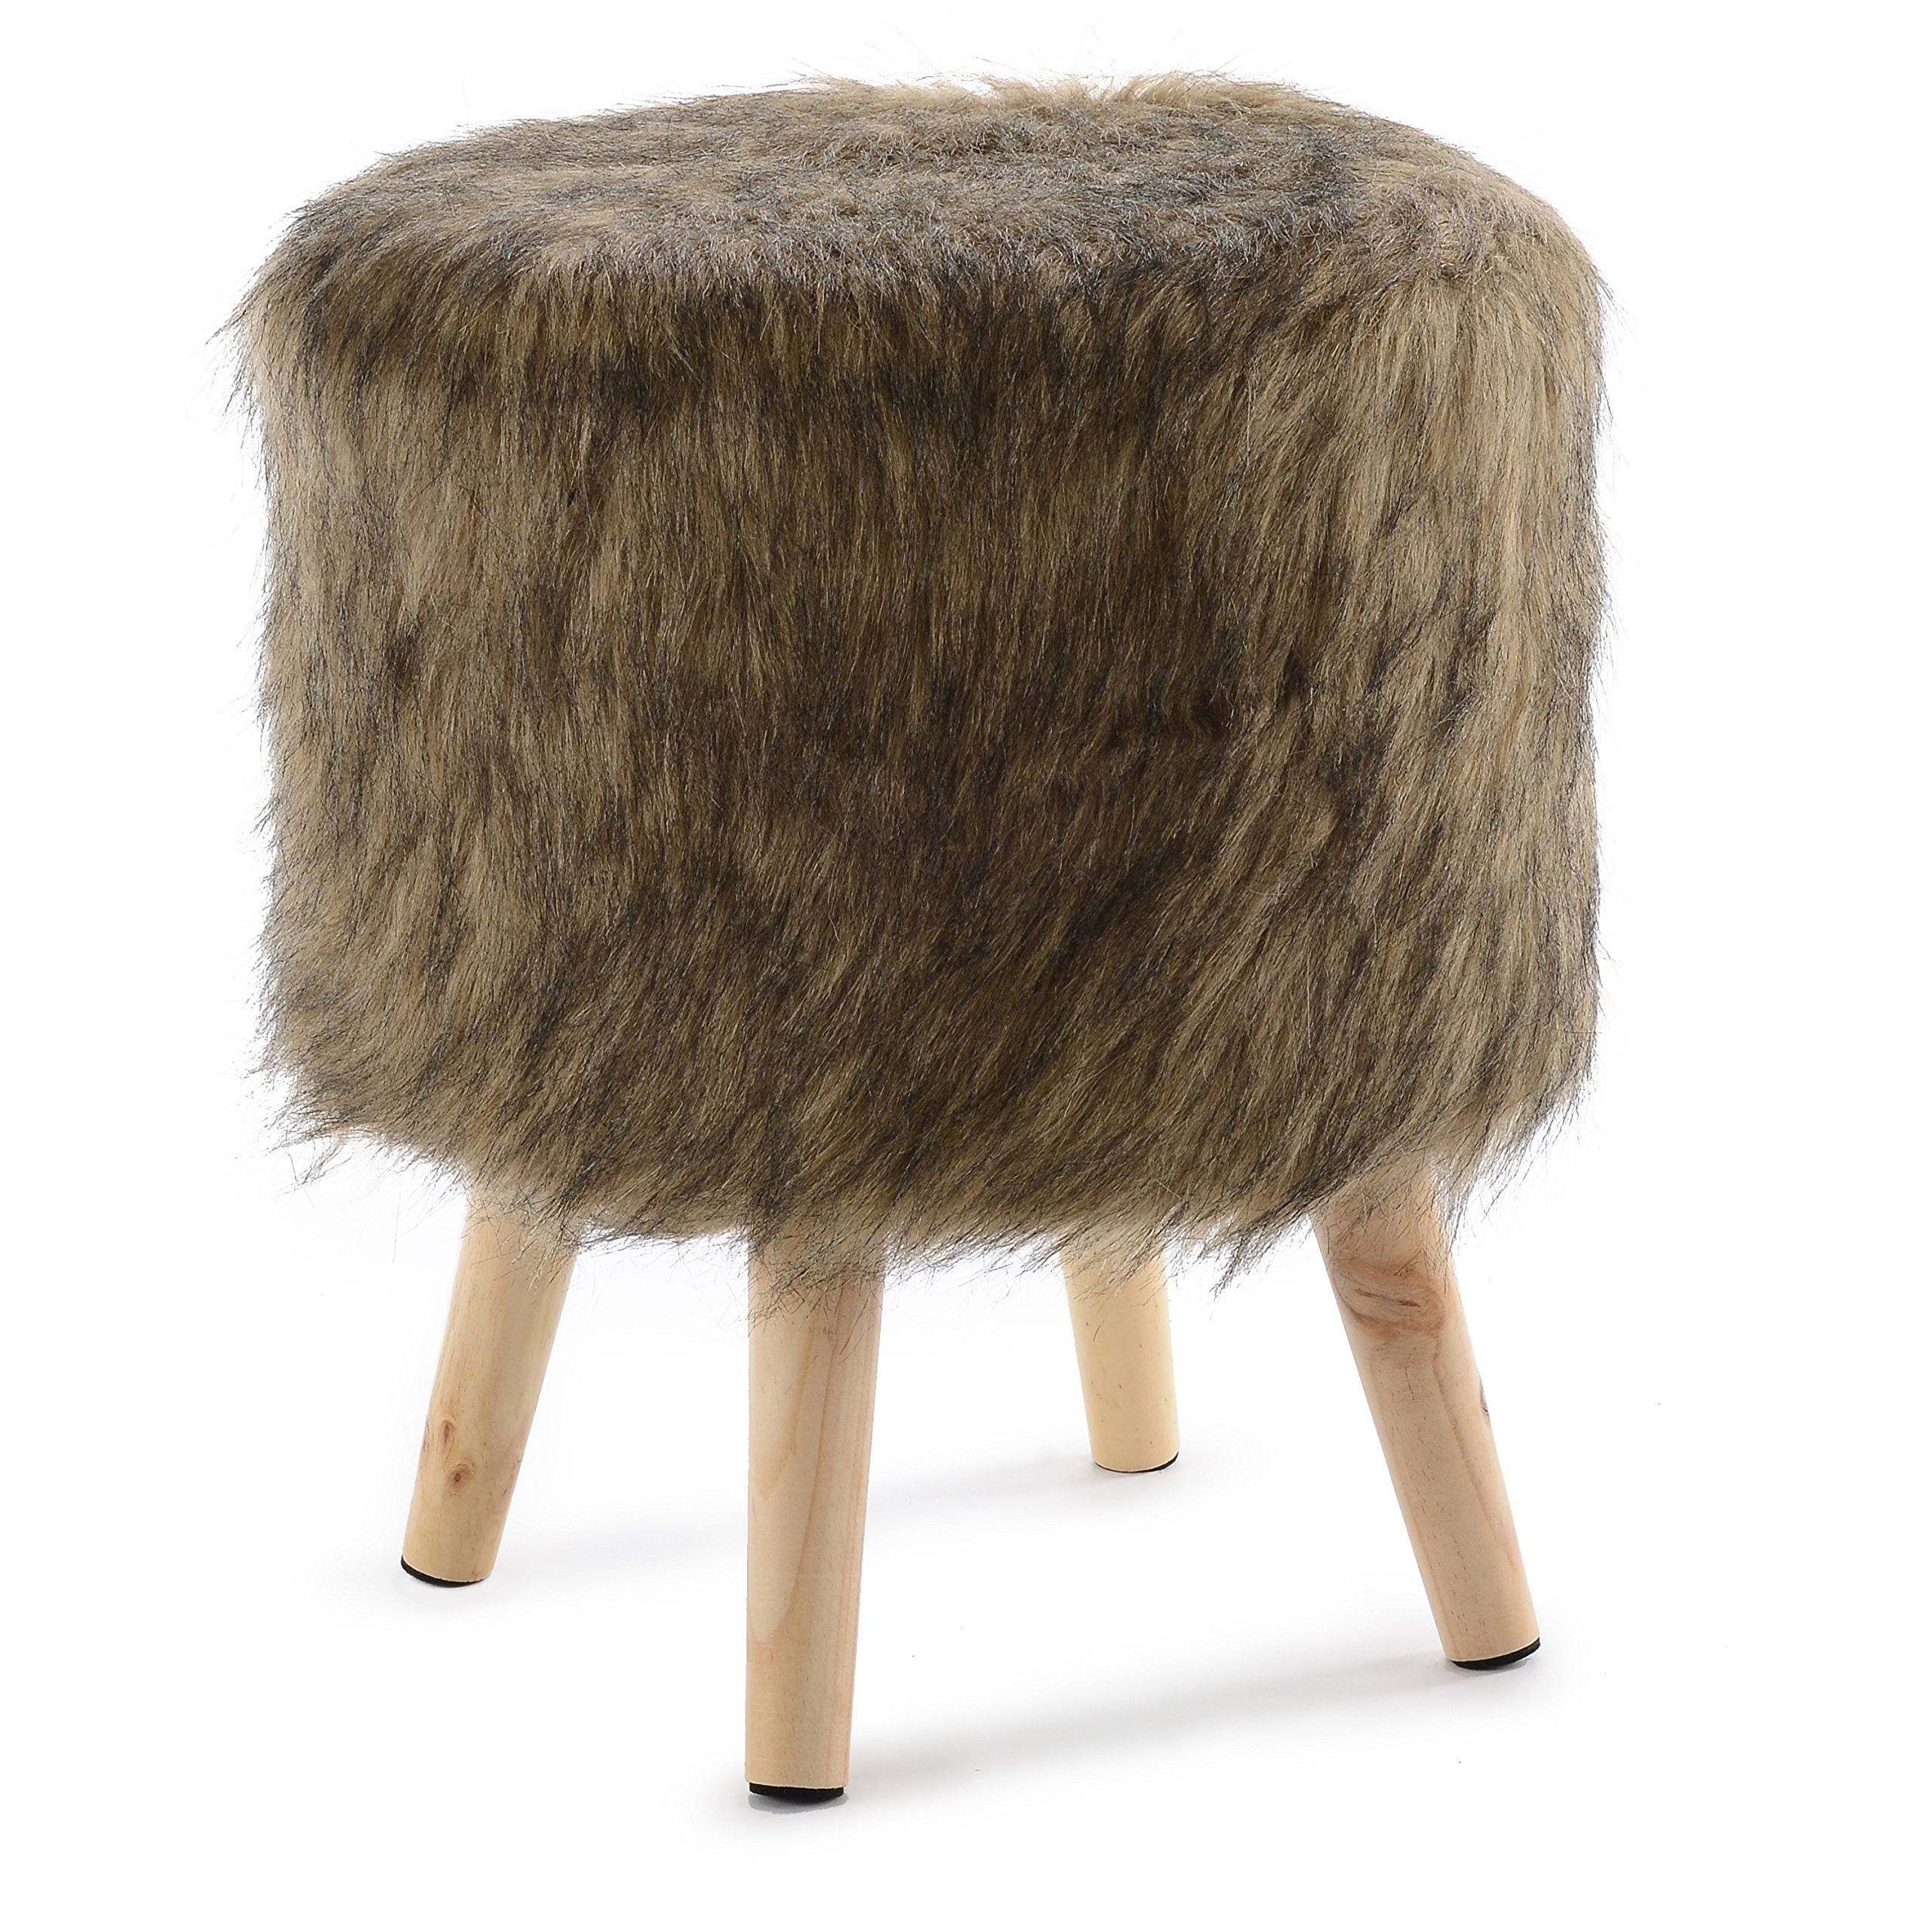 Cheer Collection 13'' Round Ottoman | Super Soft Decorative Brown Mink Faux Fur Foot Stool with Wood Legs